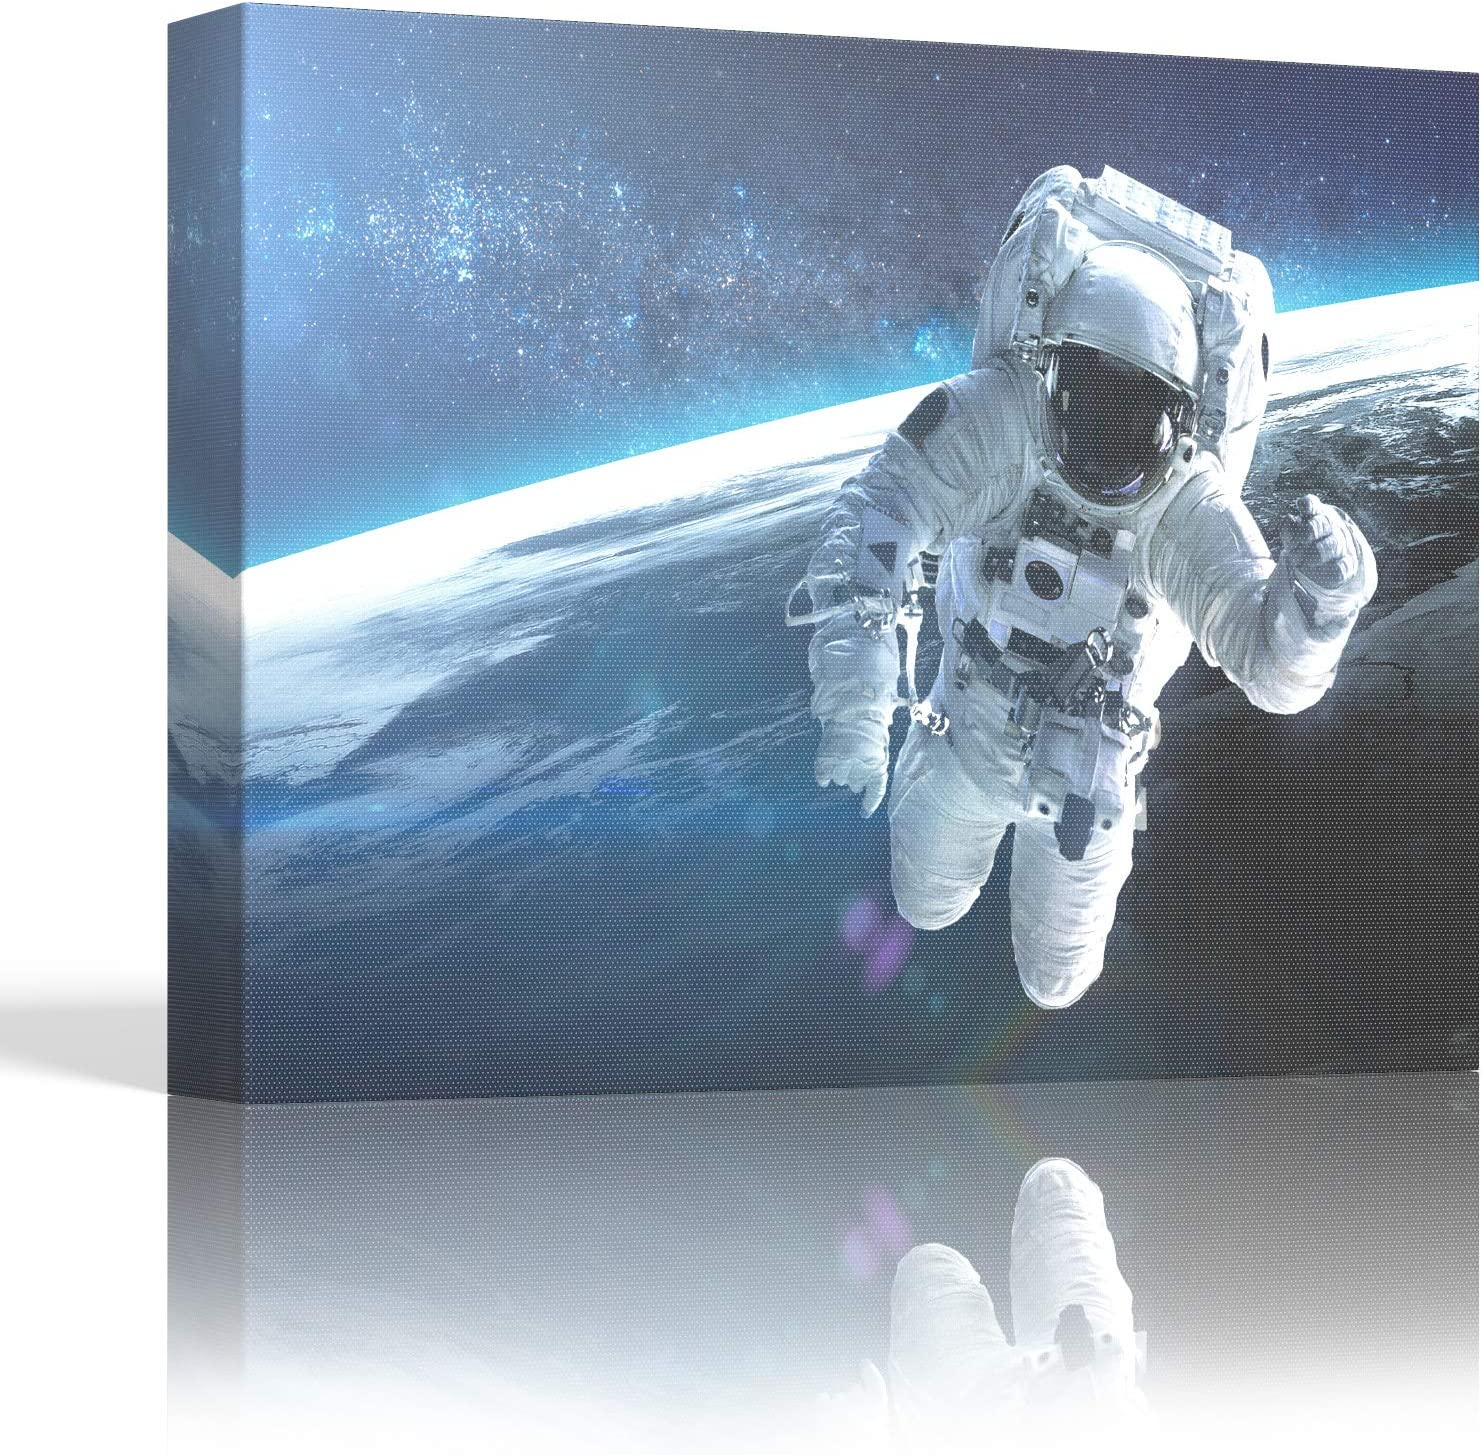 Canvas Wall Art - Astronaut Canvas, Space Wall Art Decorations for Teen Boy Wall Decor. Framed Wall Art For Men, Ready to Hang Canvas Print, Great for Classroom Decor, Bedroom, Bathroom, Office, Dorm